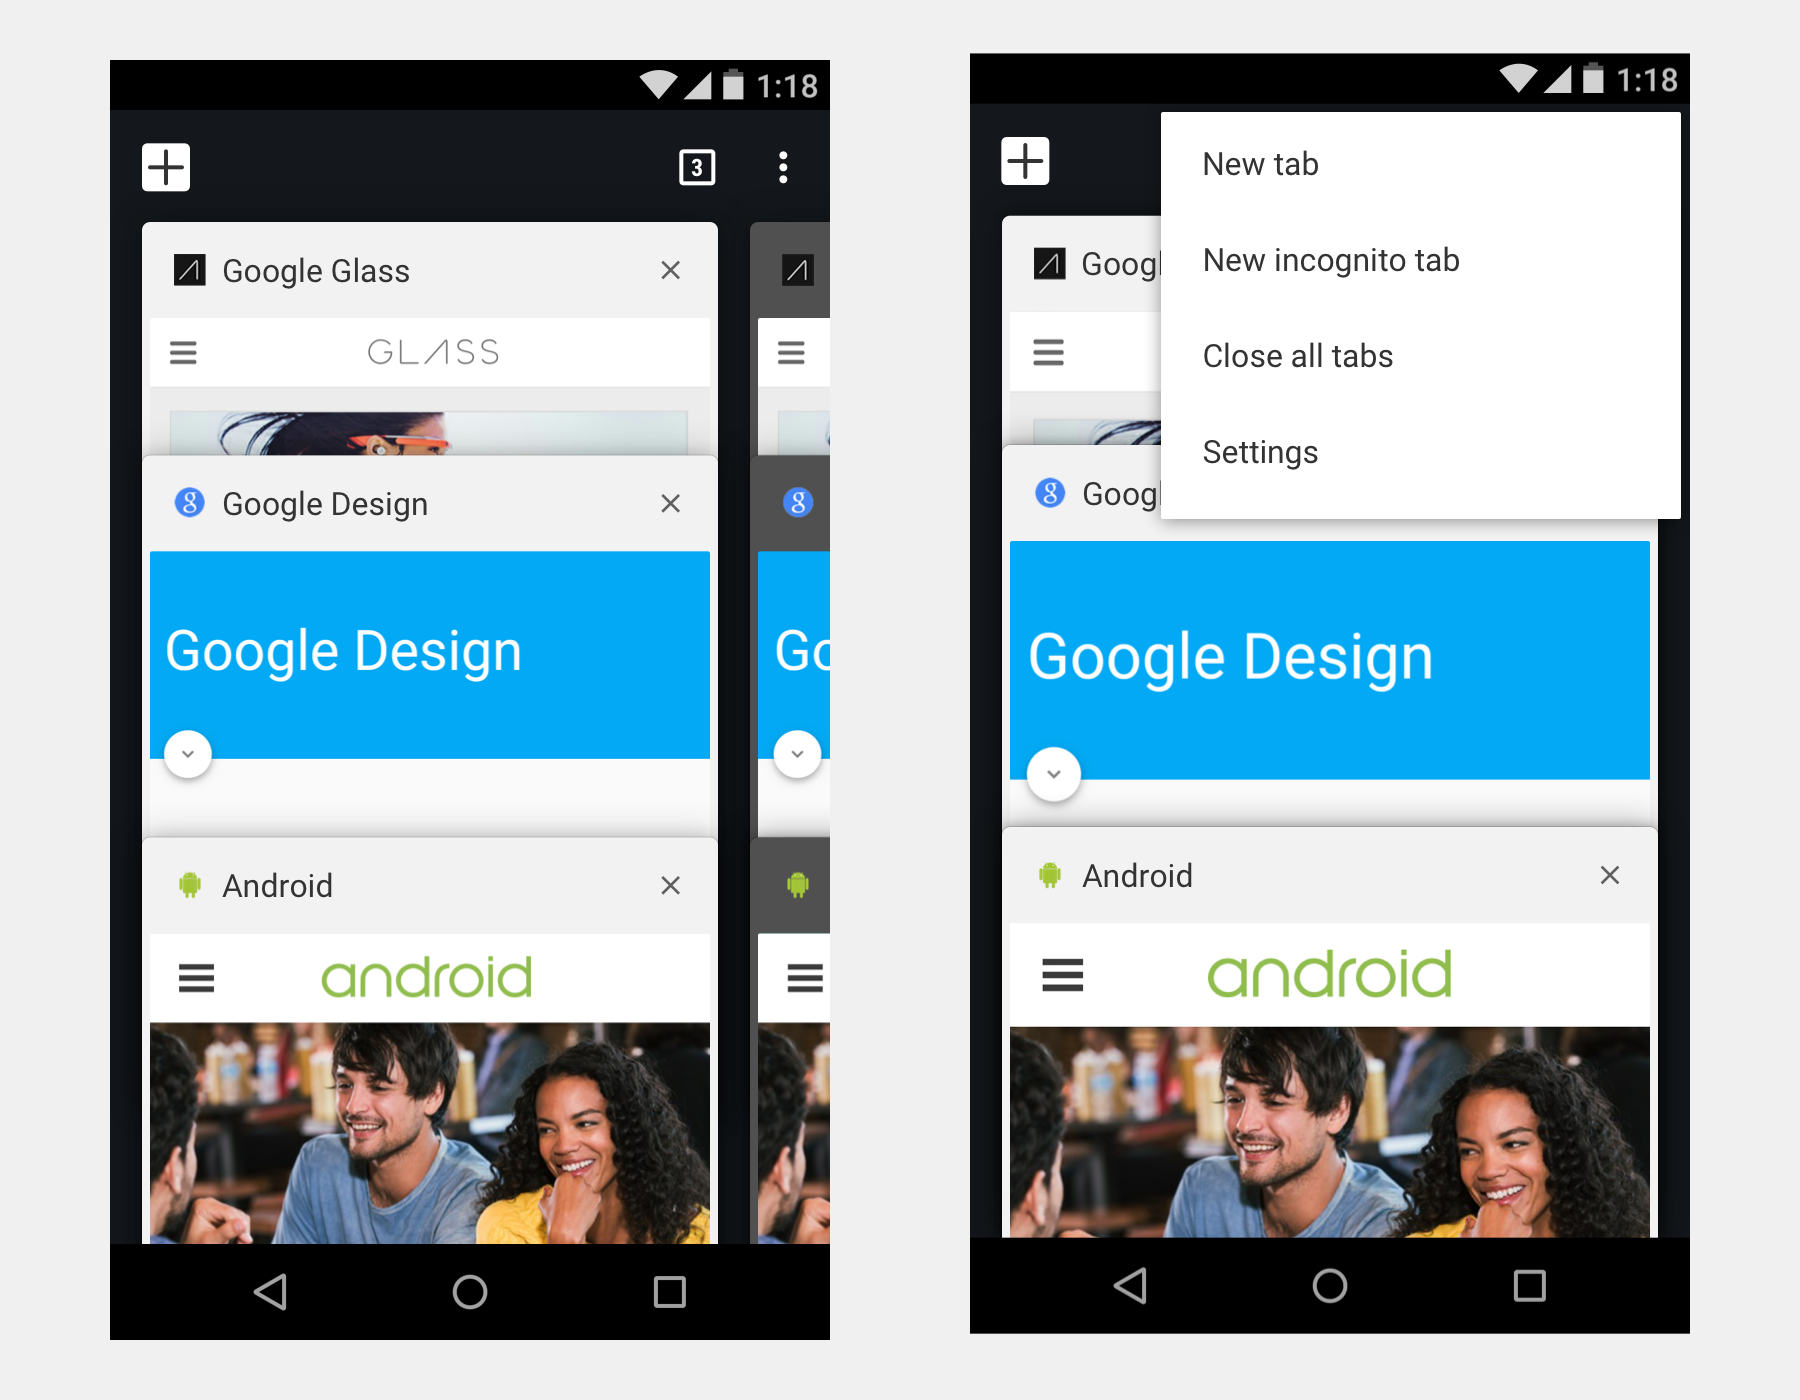 Redesigning Chrome Android  Part 2 of 2 - Google Design - Medium